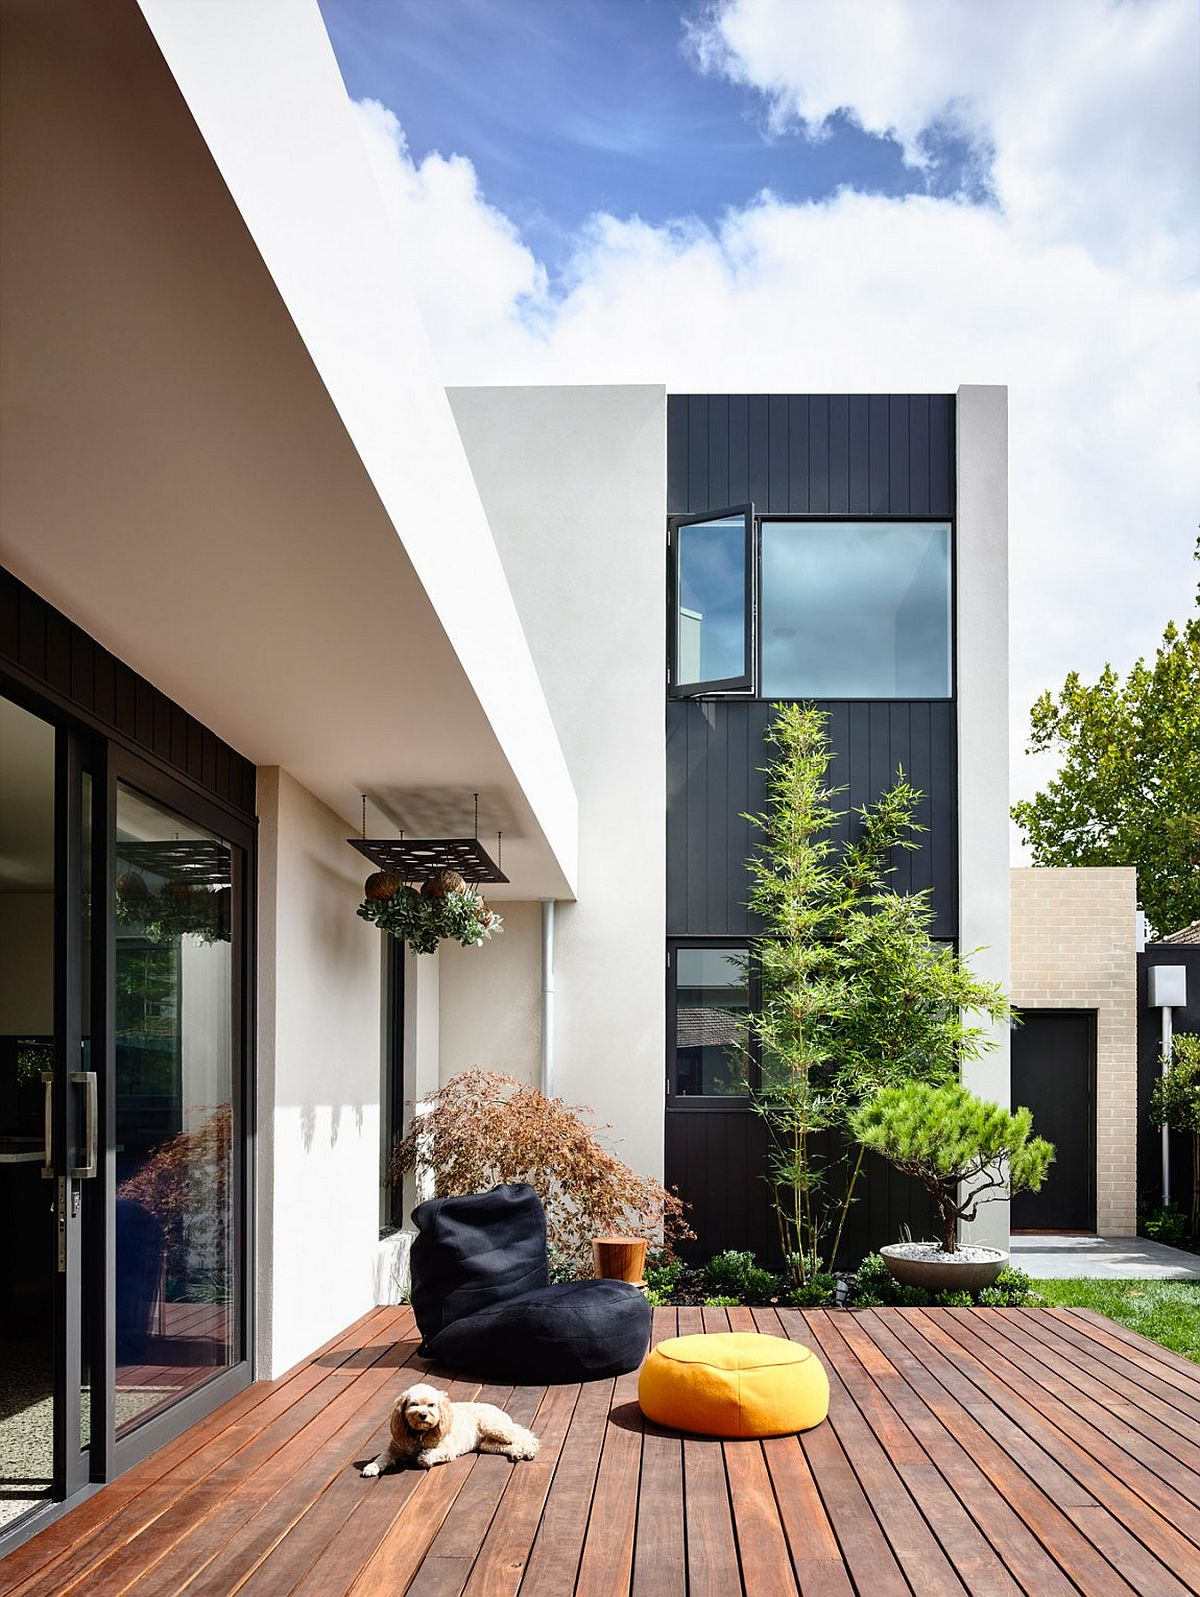 Dark wooden panels add visual contrast to the exterior of the house